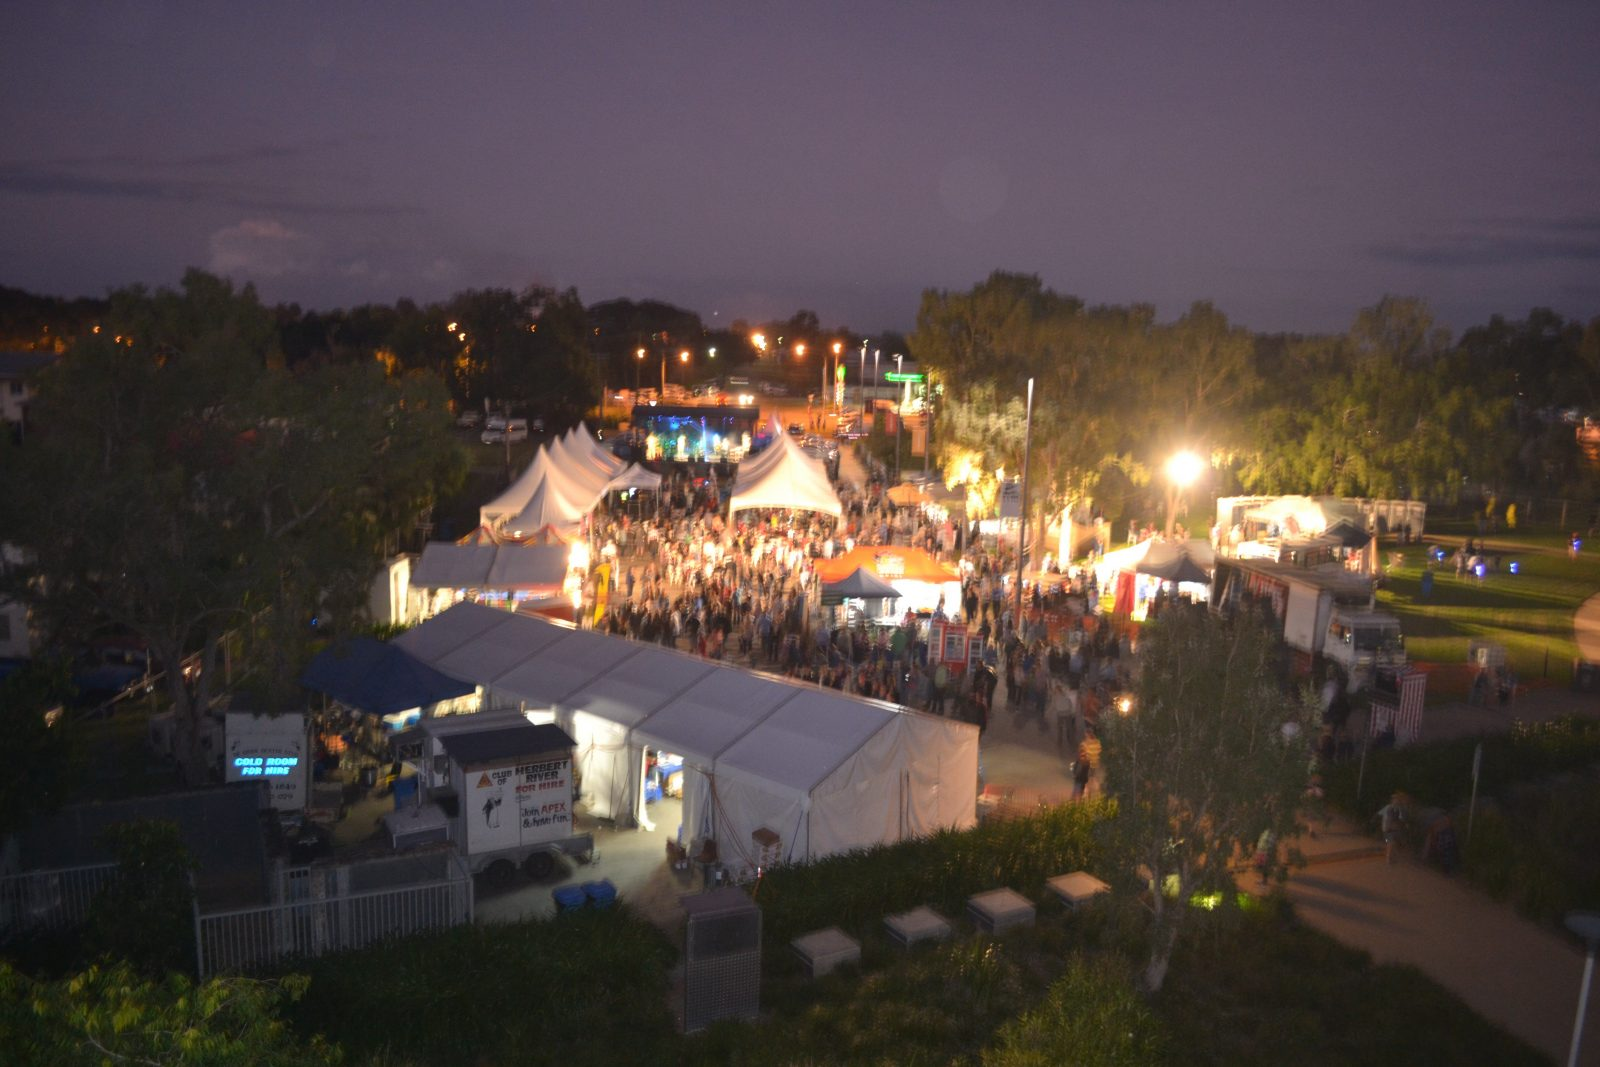 Night time shot showing main stage in bacground